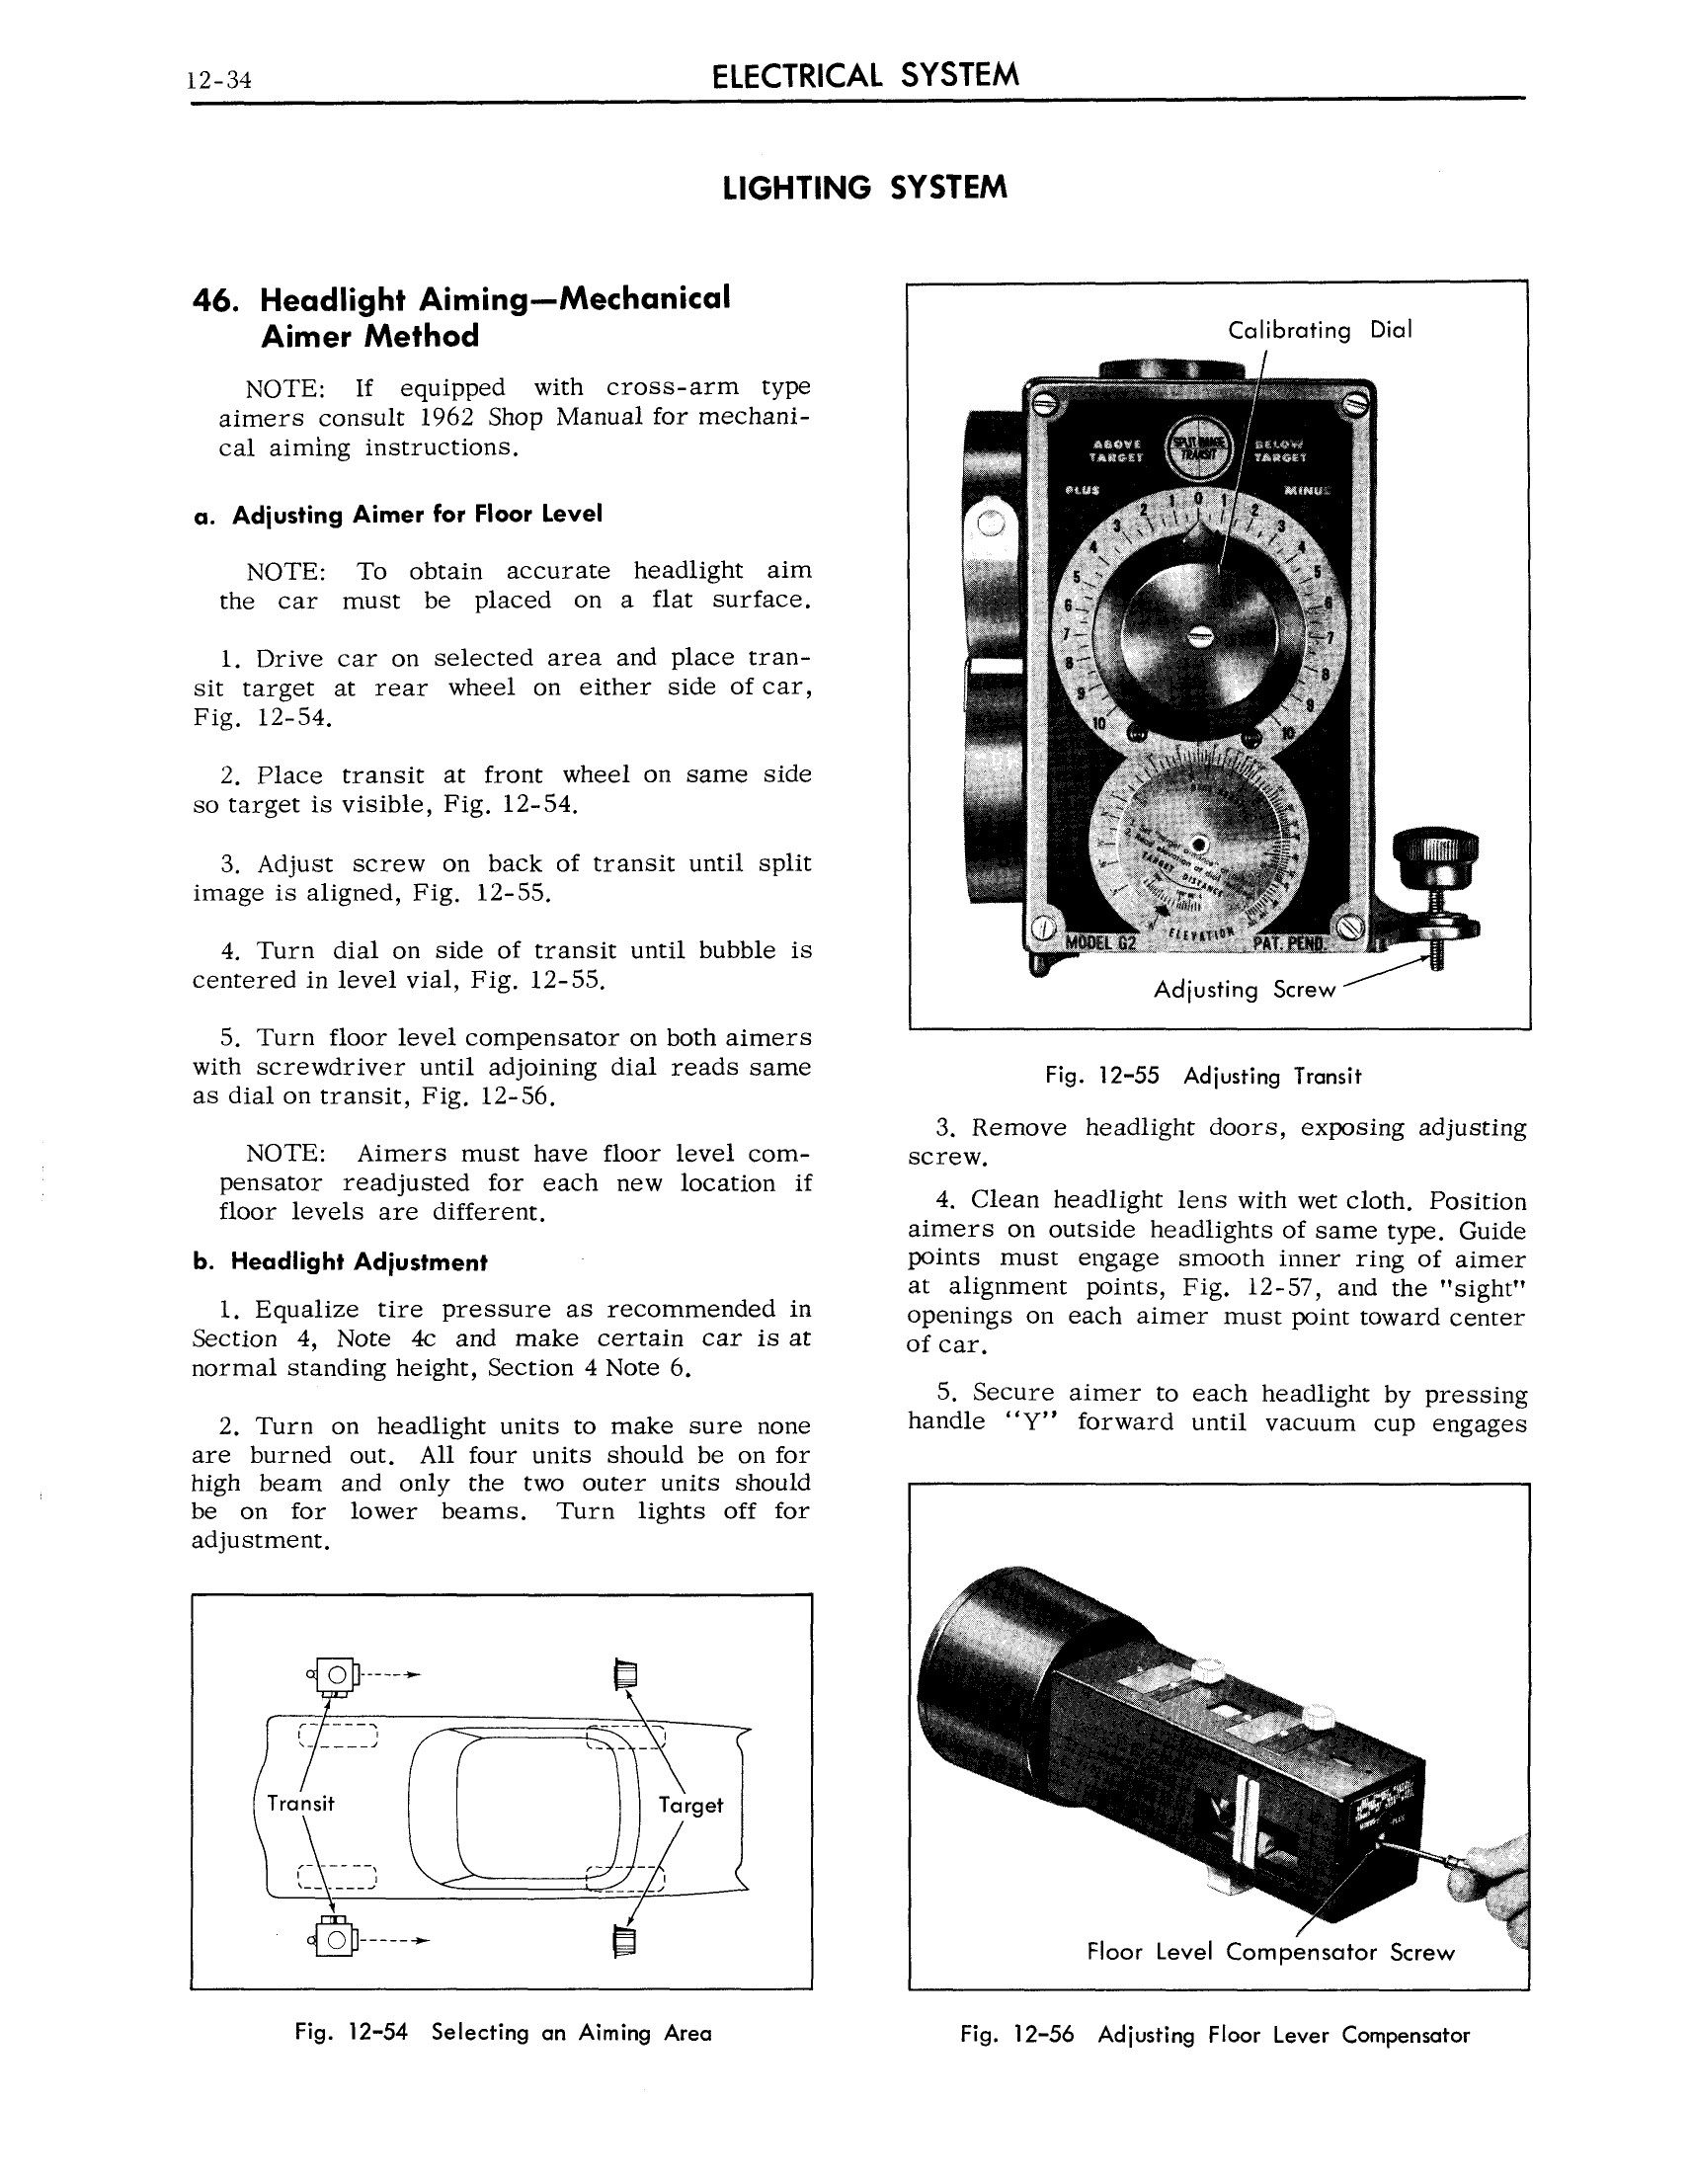 1963 Cadillac Shop Manual- Electrical System Page 34 of 100